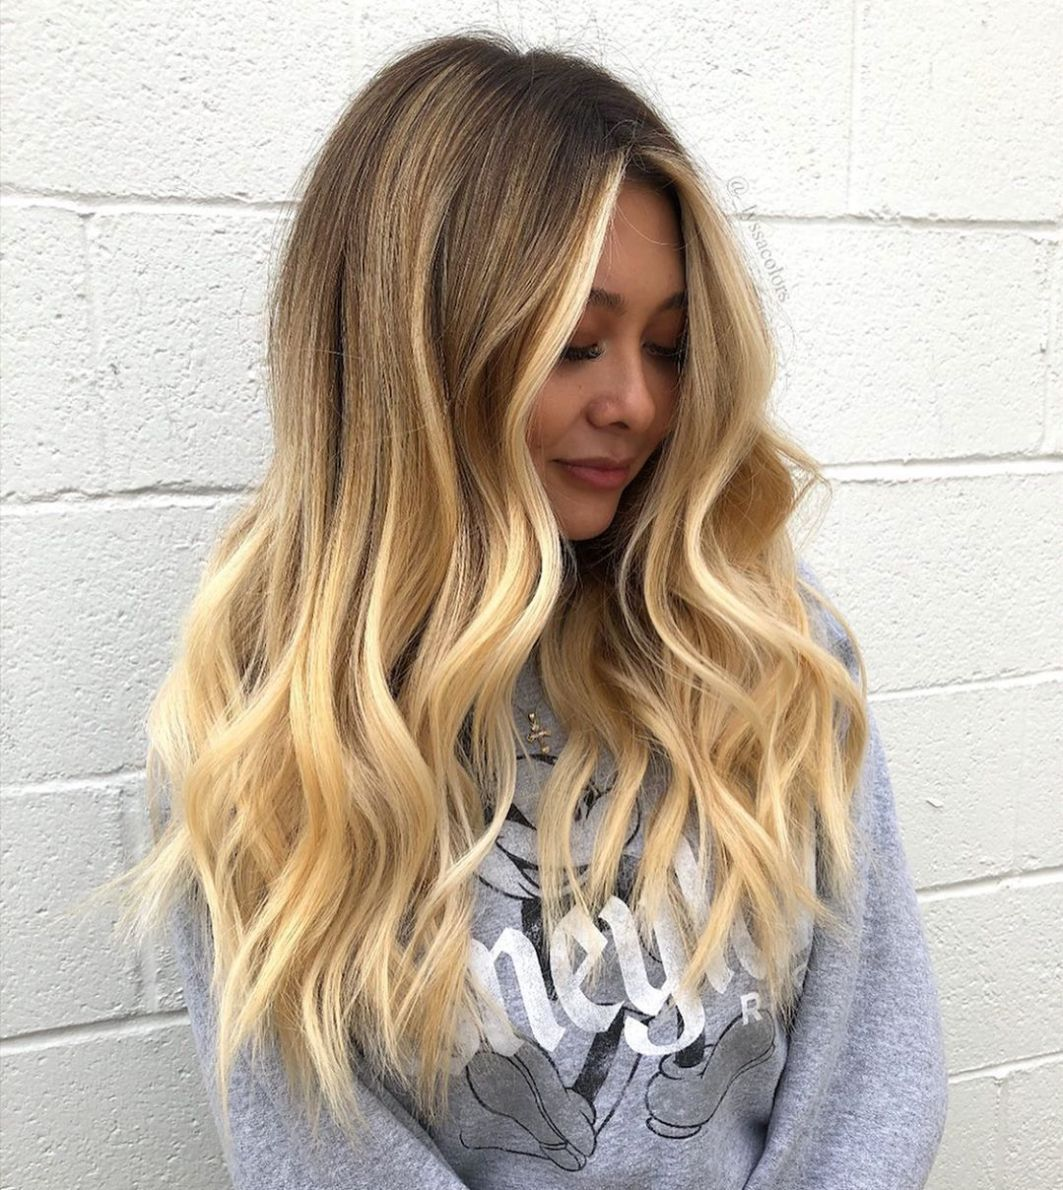 Best 18 Amazing Blonde Balayage Hair Color Ideas for 18   Hair ...